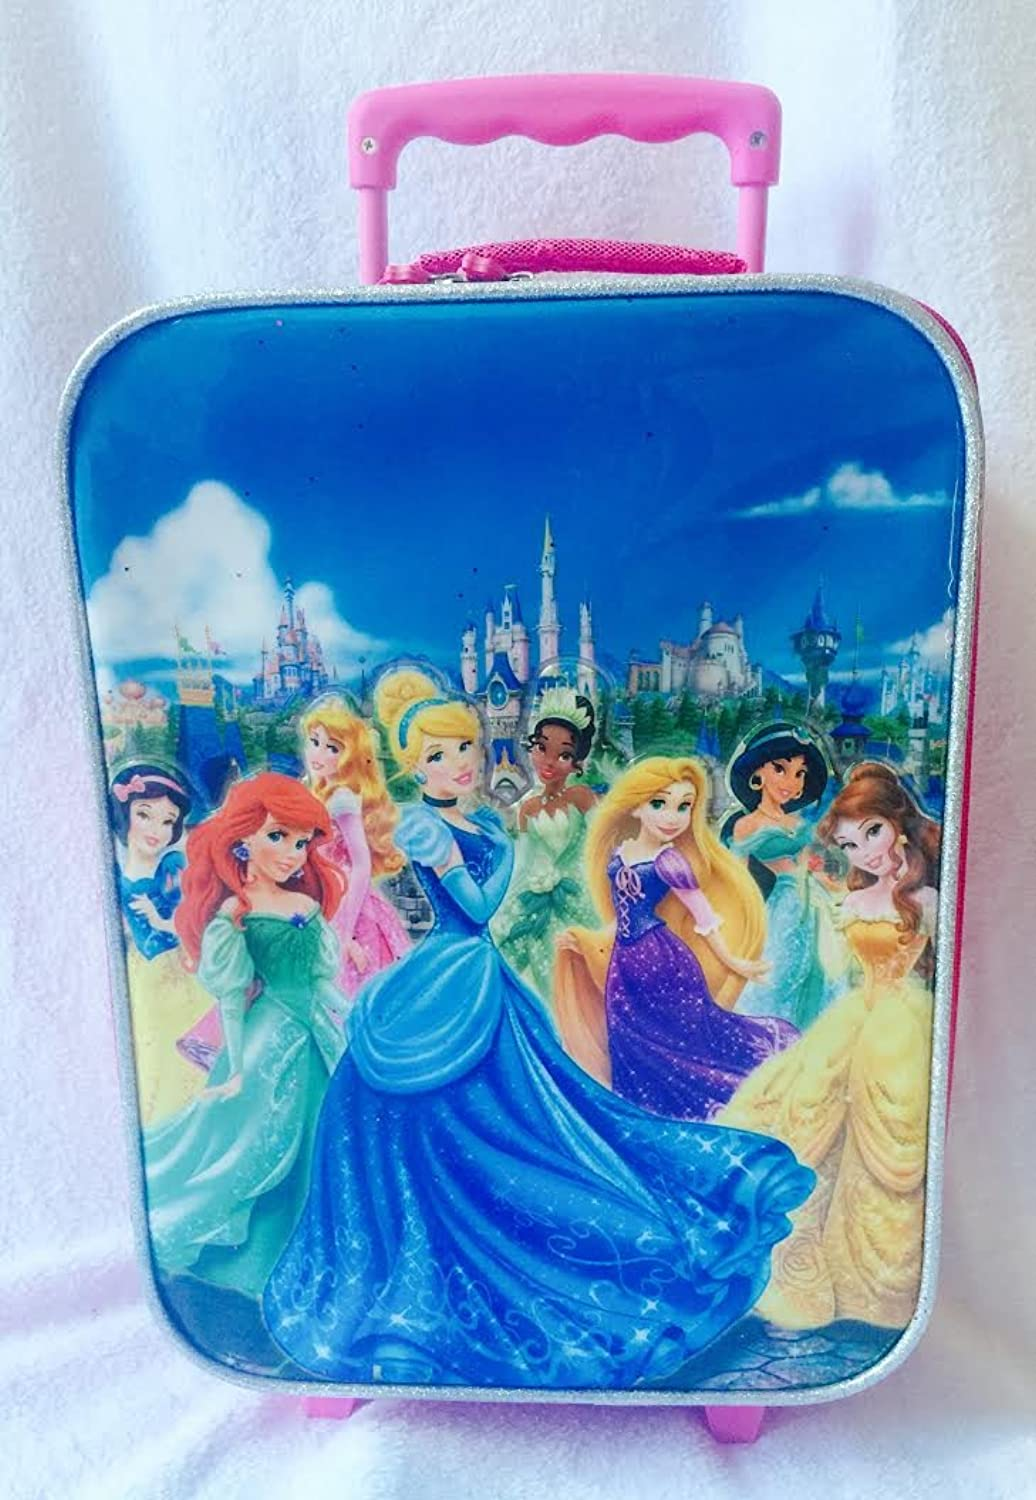 Authentic Disney Store, Princess Pink pull along Trolley holiday or school Bag for girls  Features Snow White, Ariel, Aurora, Cinderella, Tiana, Rapunzel, Jasmine, Belle